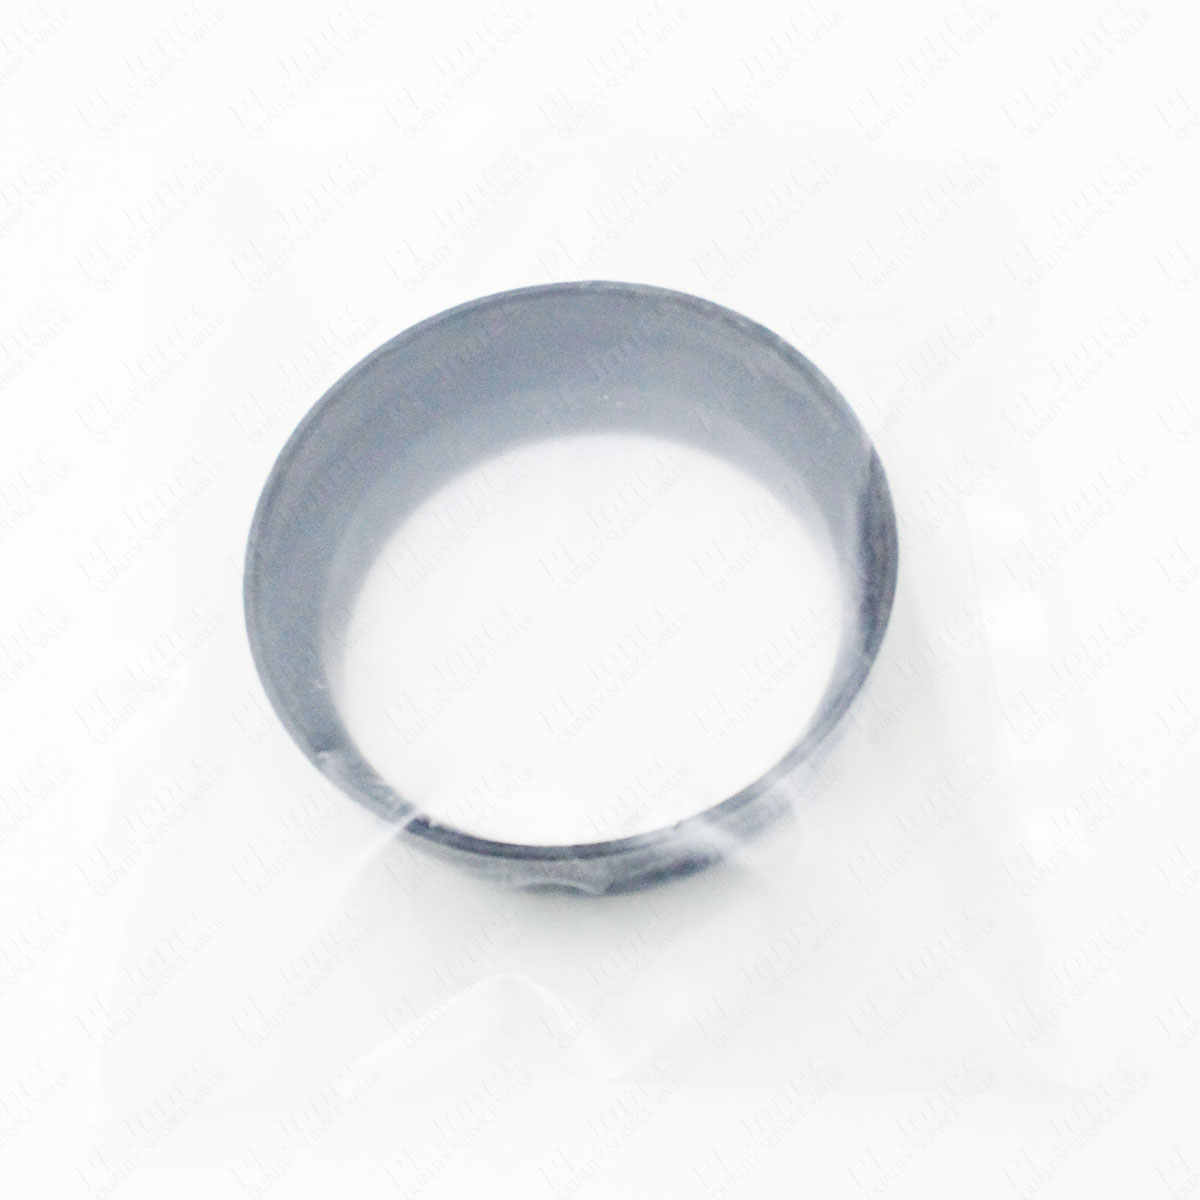 Air pipe adapter/ reducer